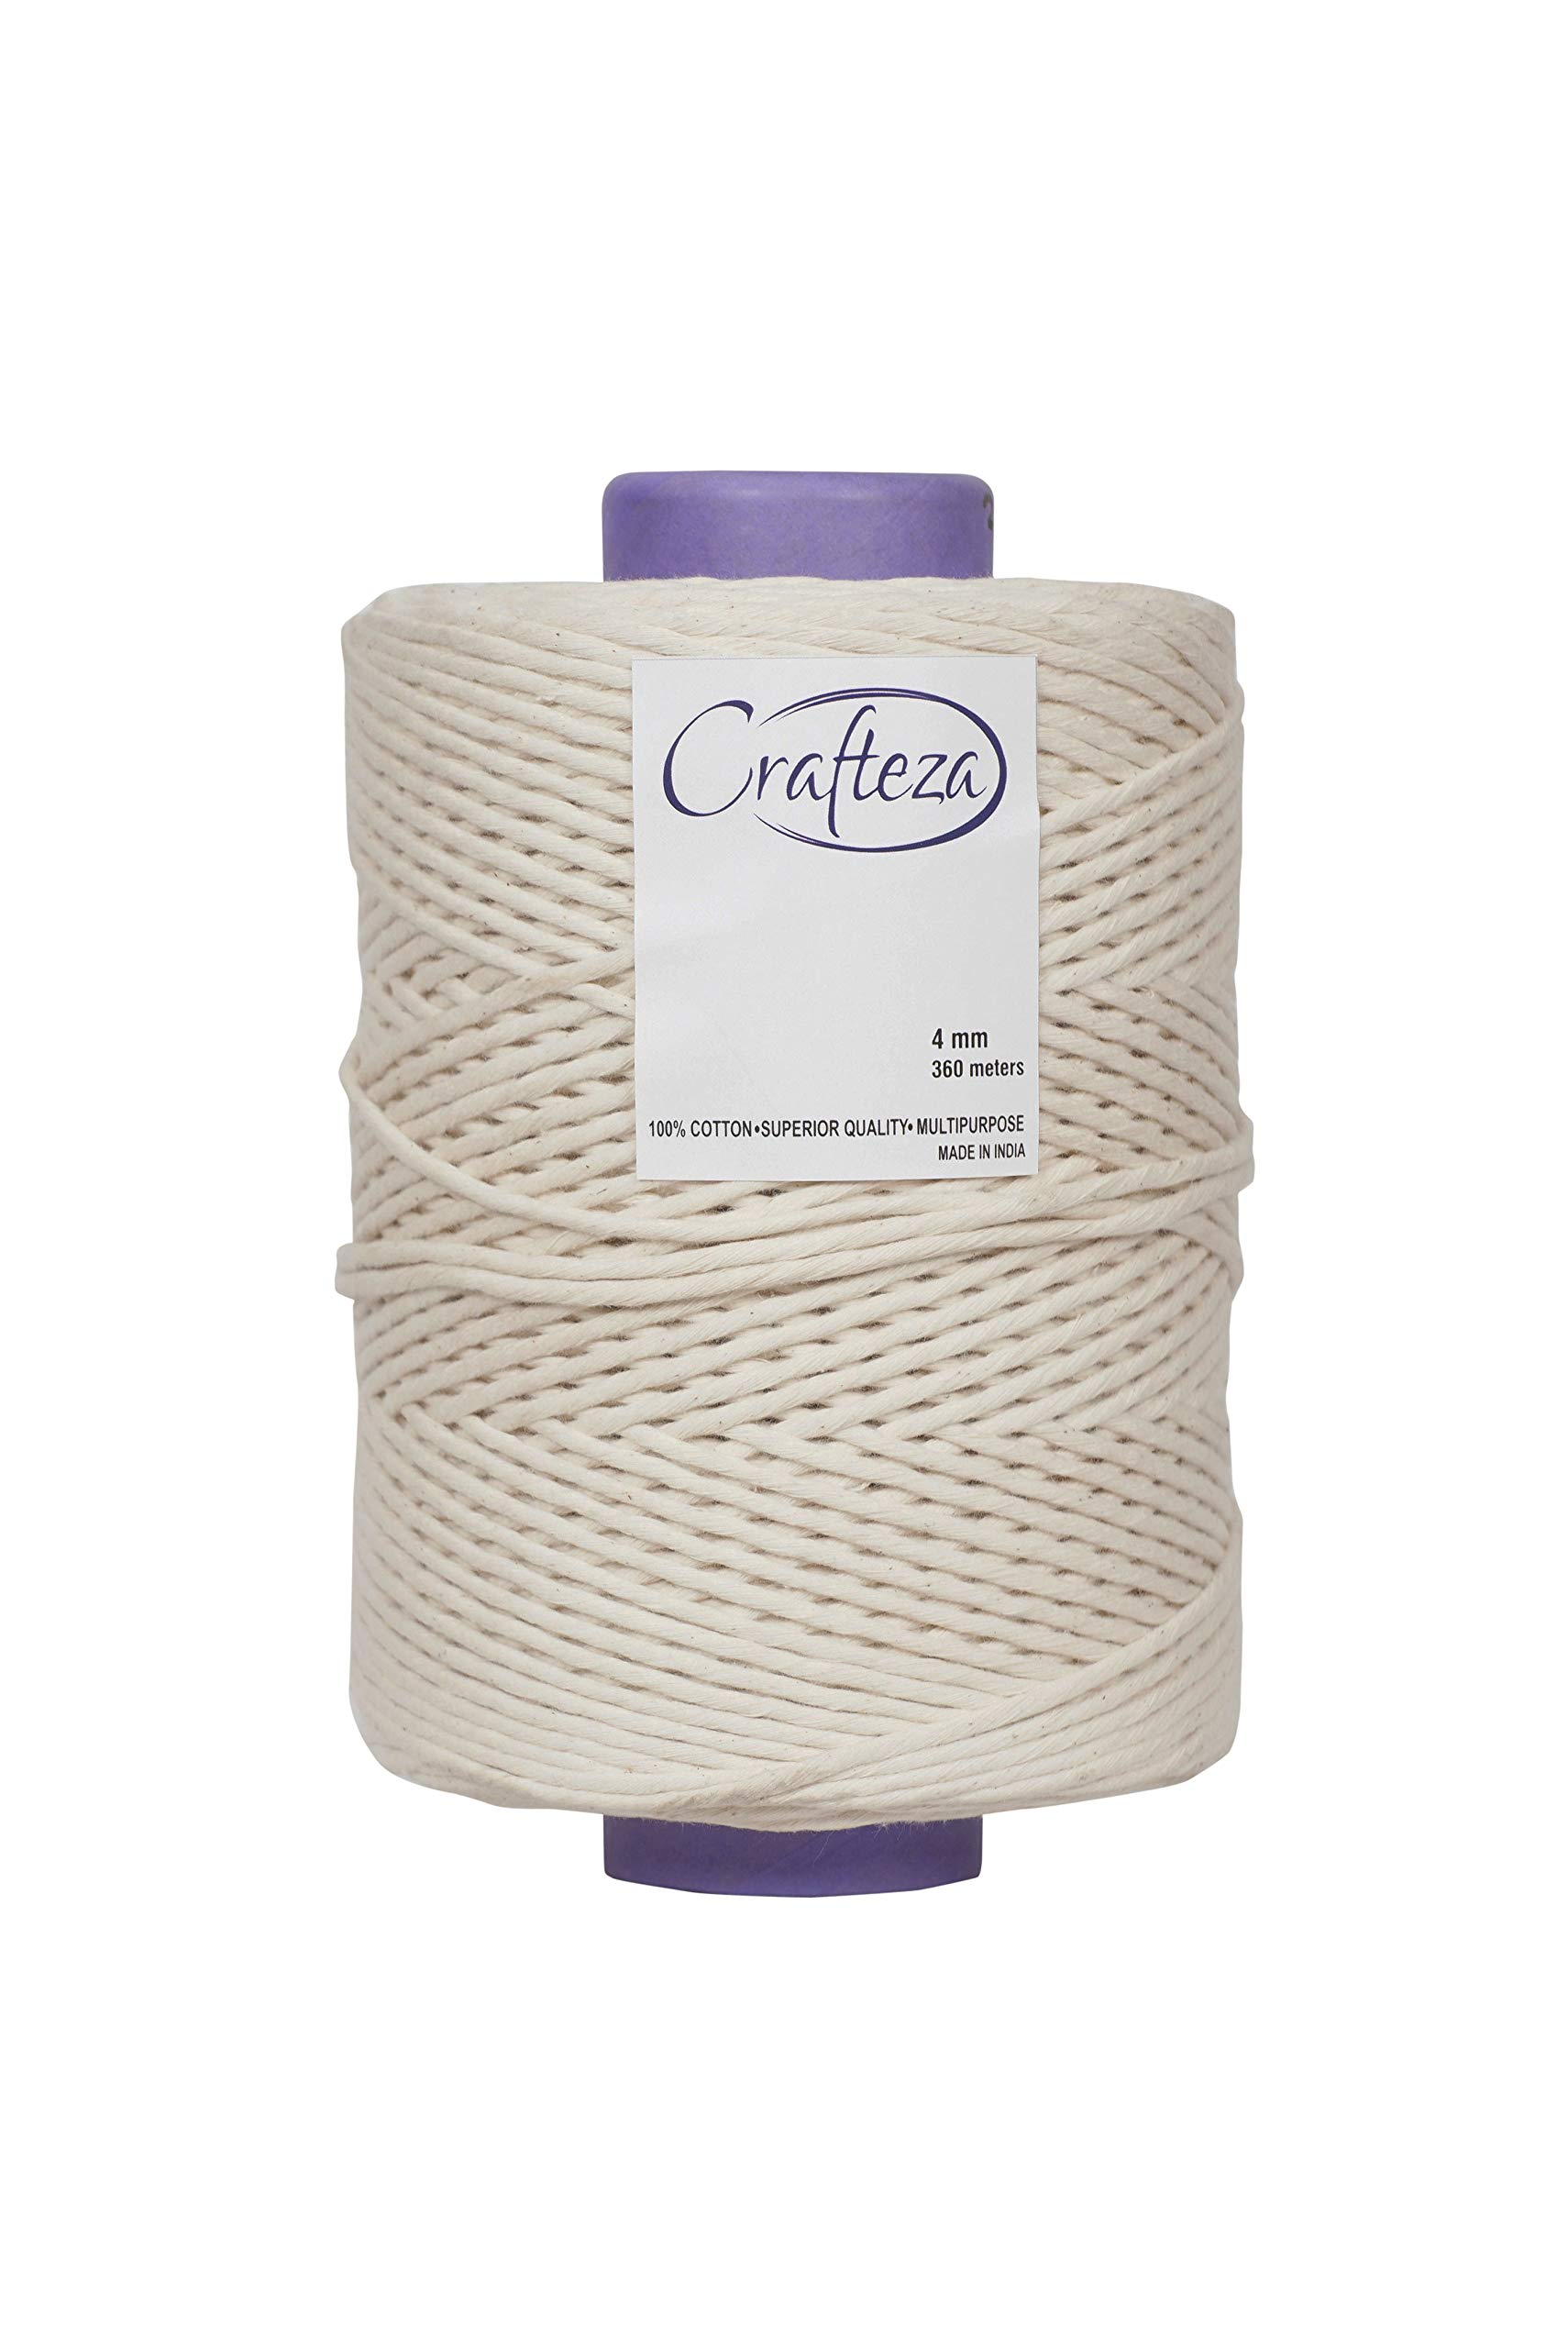 Crafteza Macrame Cord 4mm X 360 mt (About 1181 ft) Single Strand Bulk Knotting Rope - Natural Virgin Cotton Handmade Decorations Macrame Wall Hangings Plant Hanger Bohemian Wedding Backdrops Arches